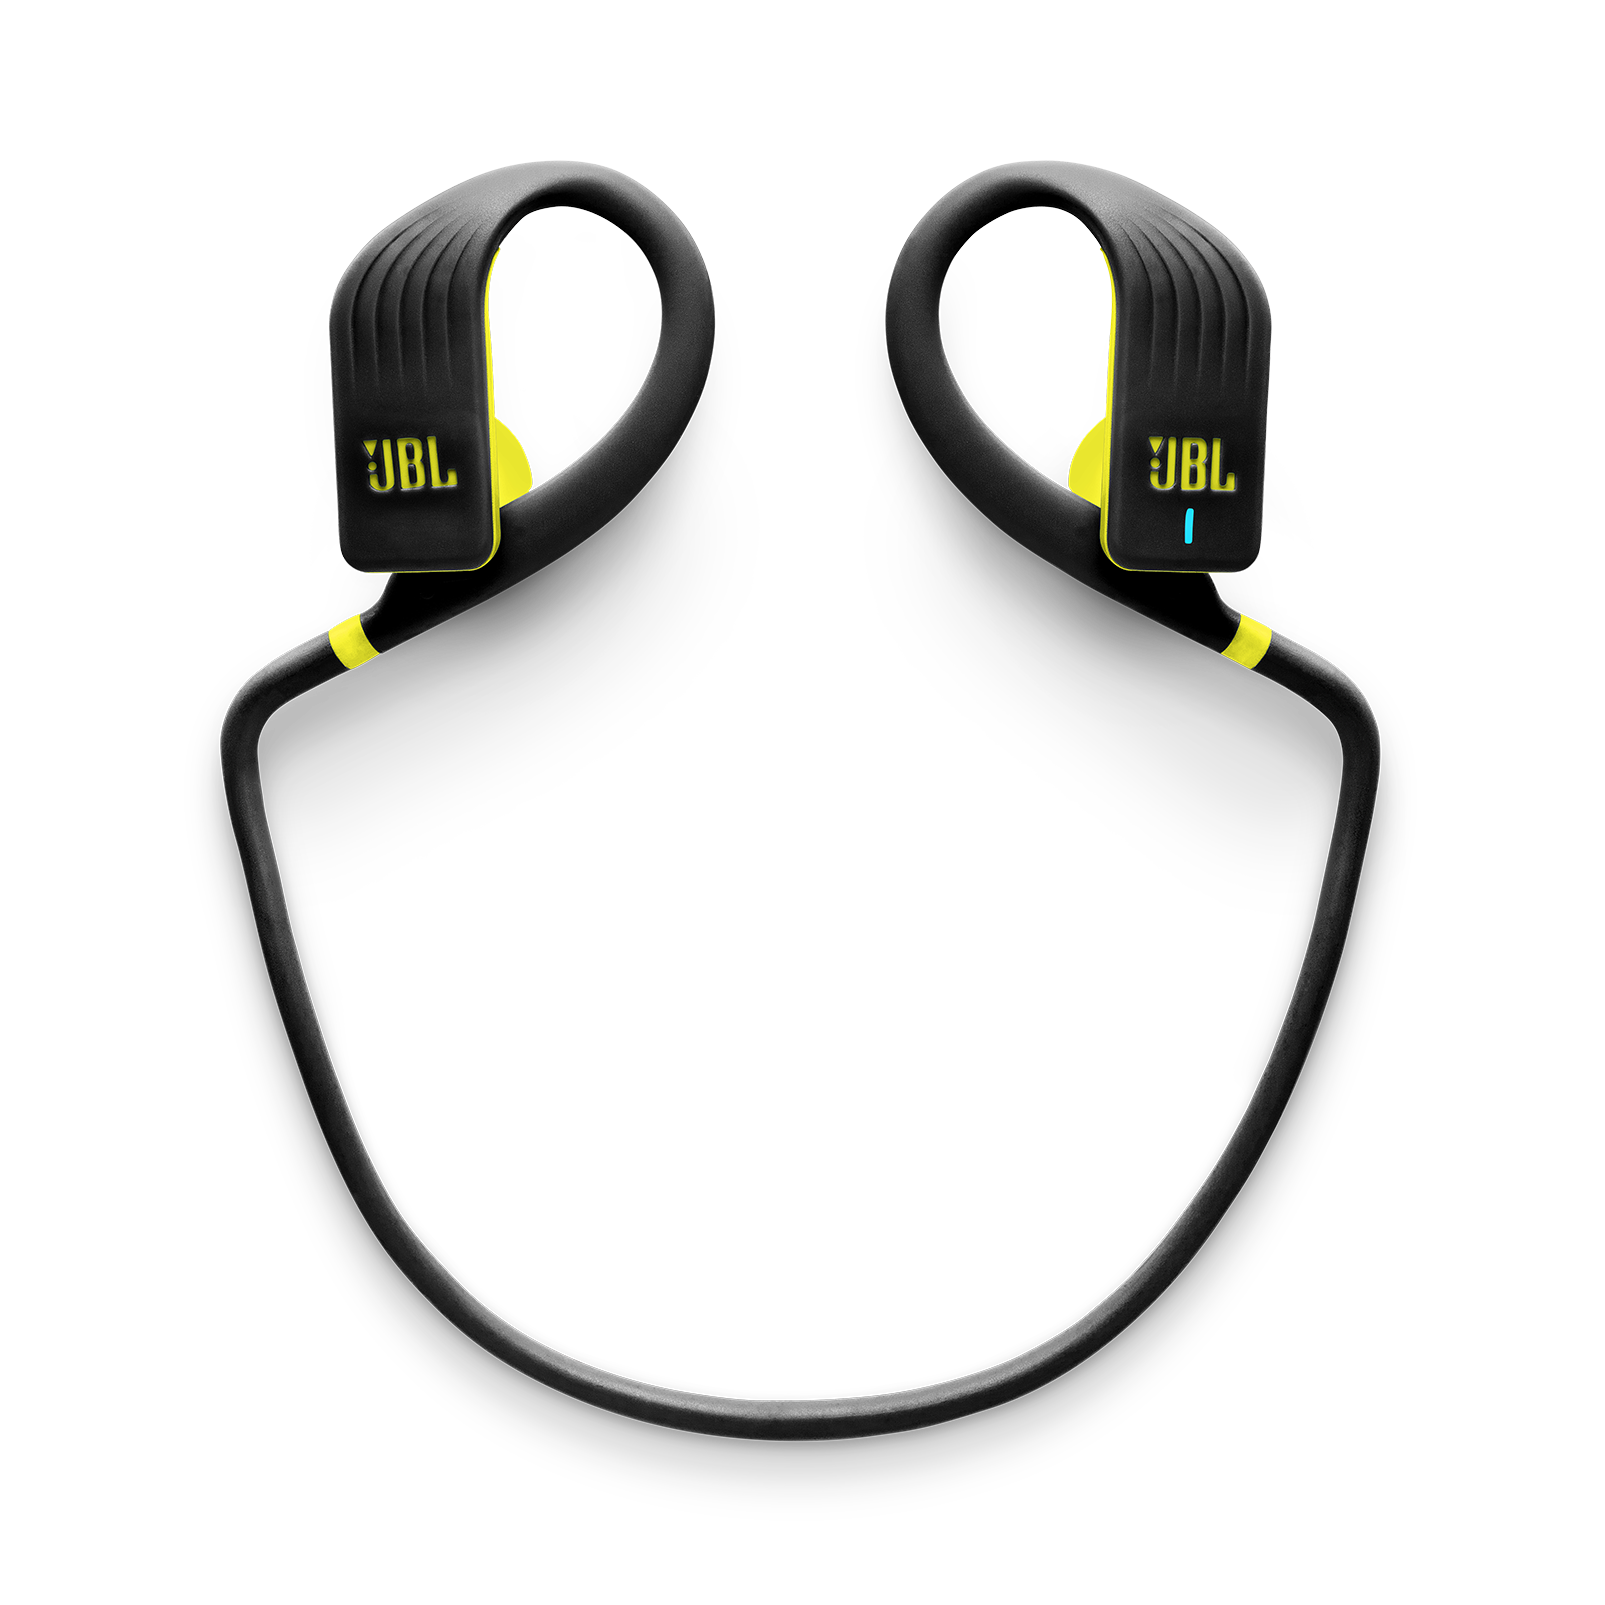 JBL Endurance JUMP - Yellow - Waterproof Wireless Sport In-Ear Headphones - Detailshot 2